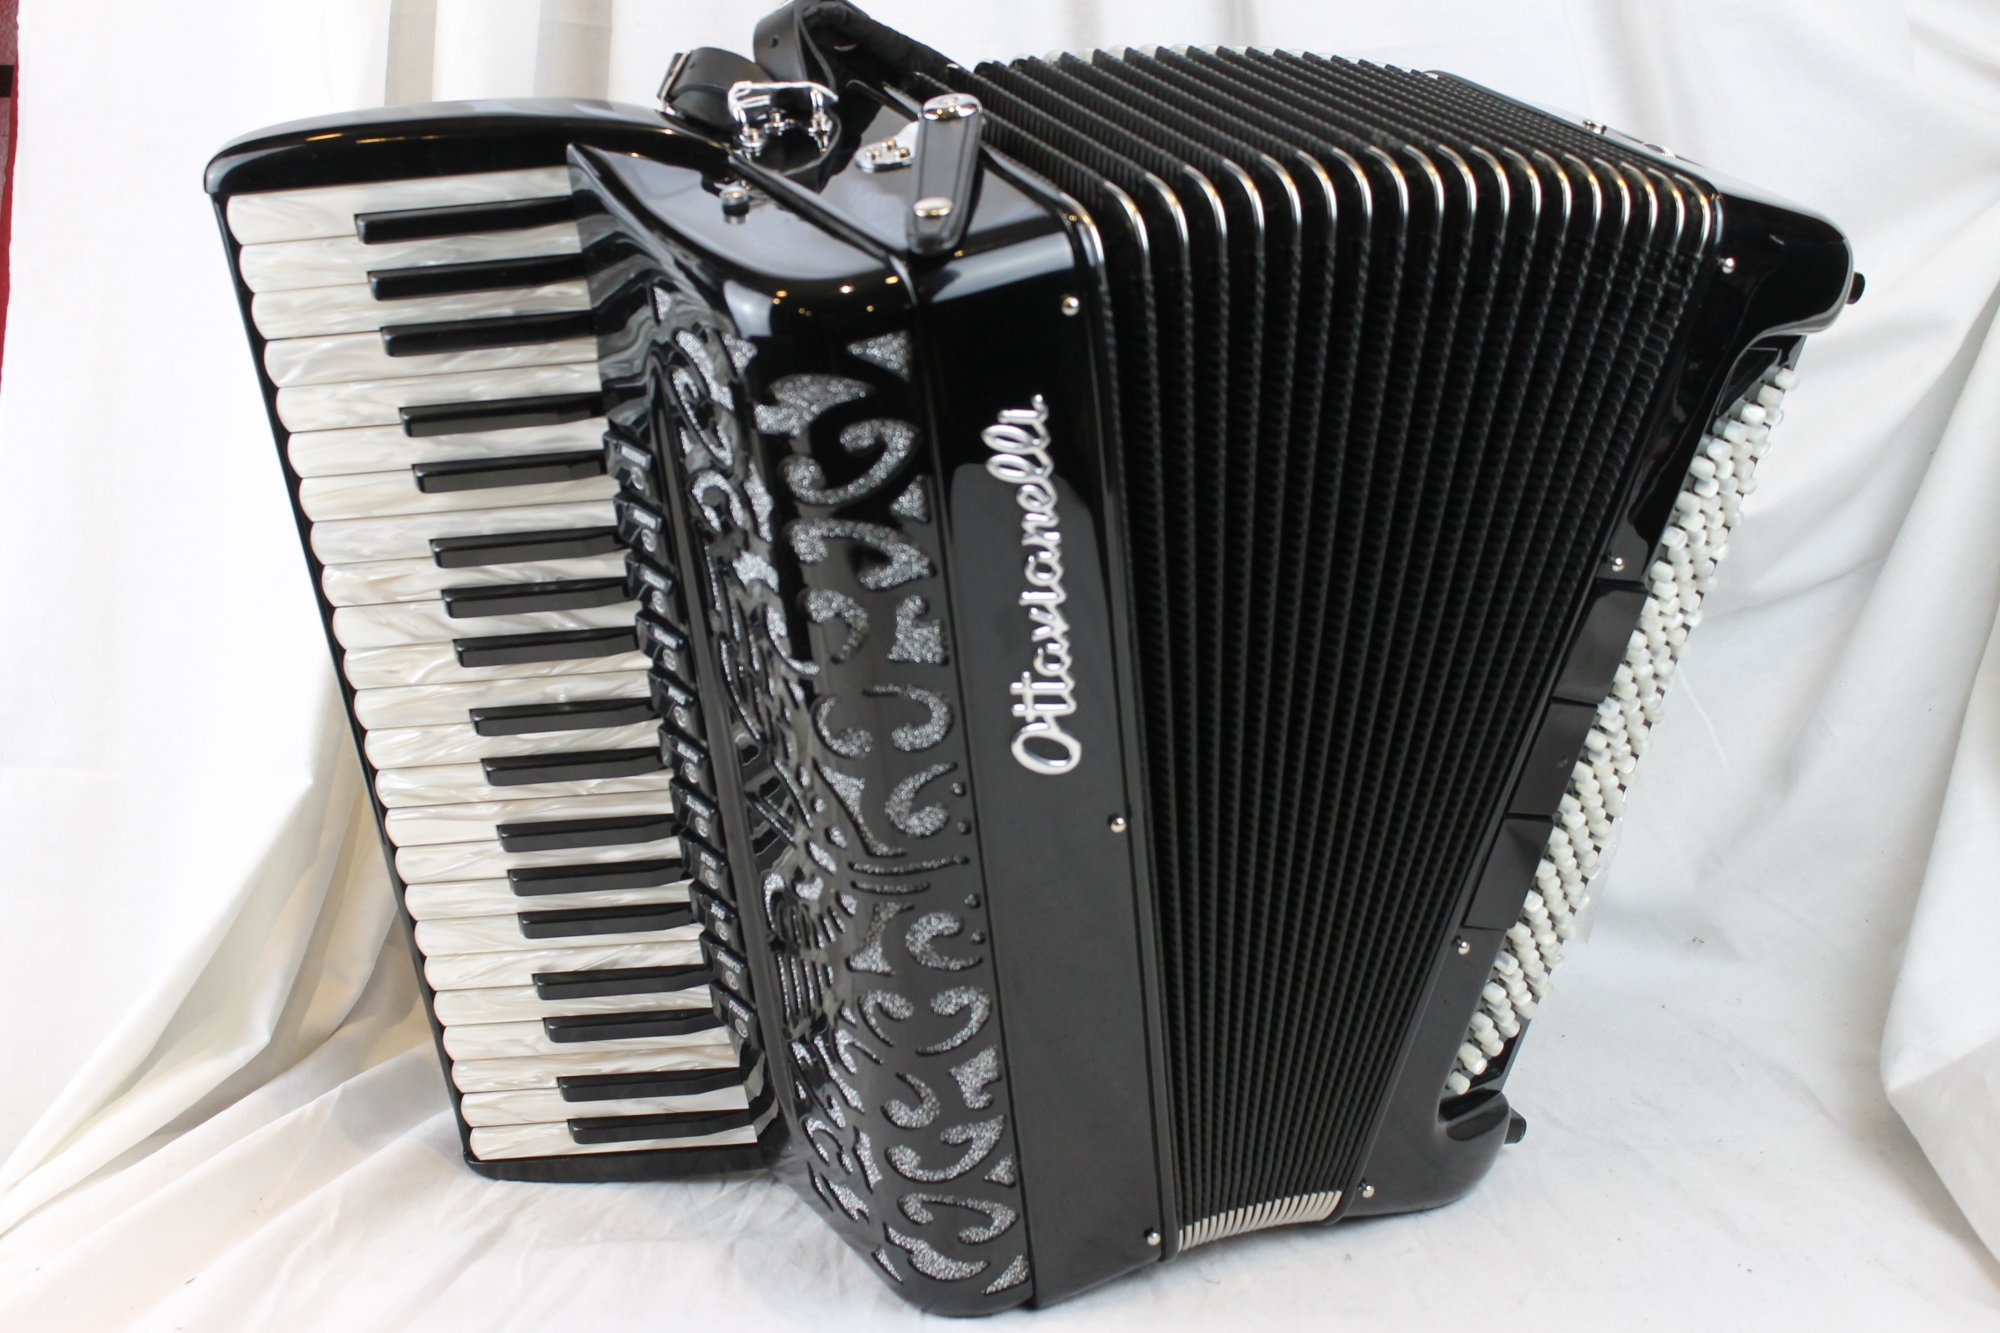 NEW Black Ottavianelli Principessa II Piano Accordion LMMH 41 120